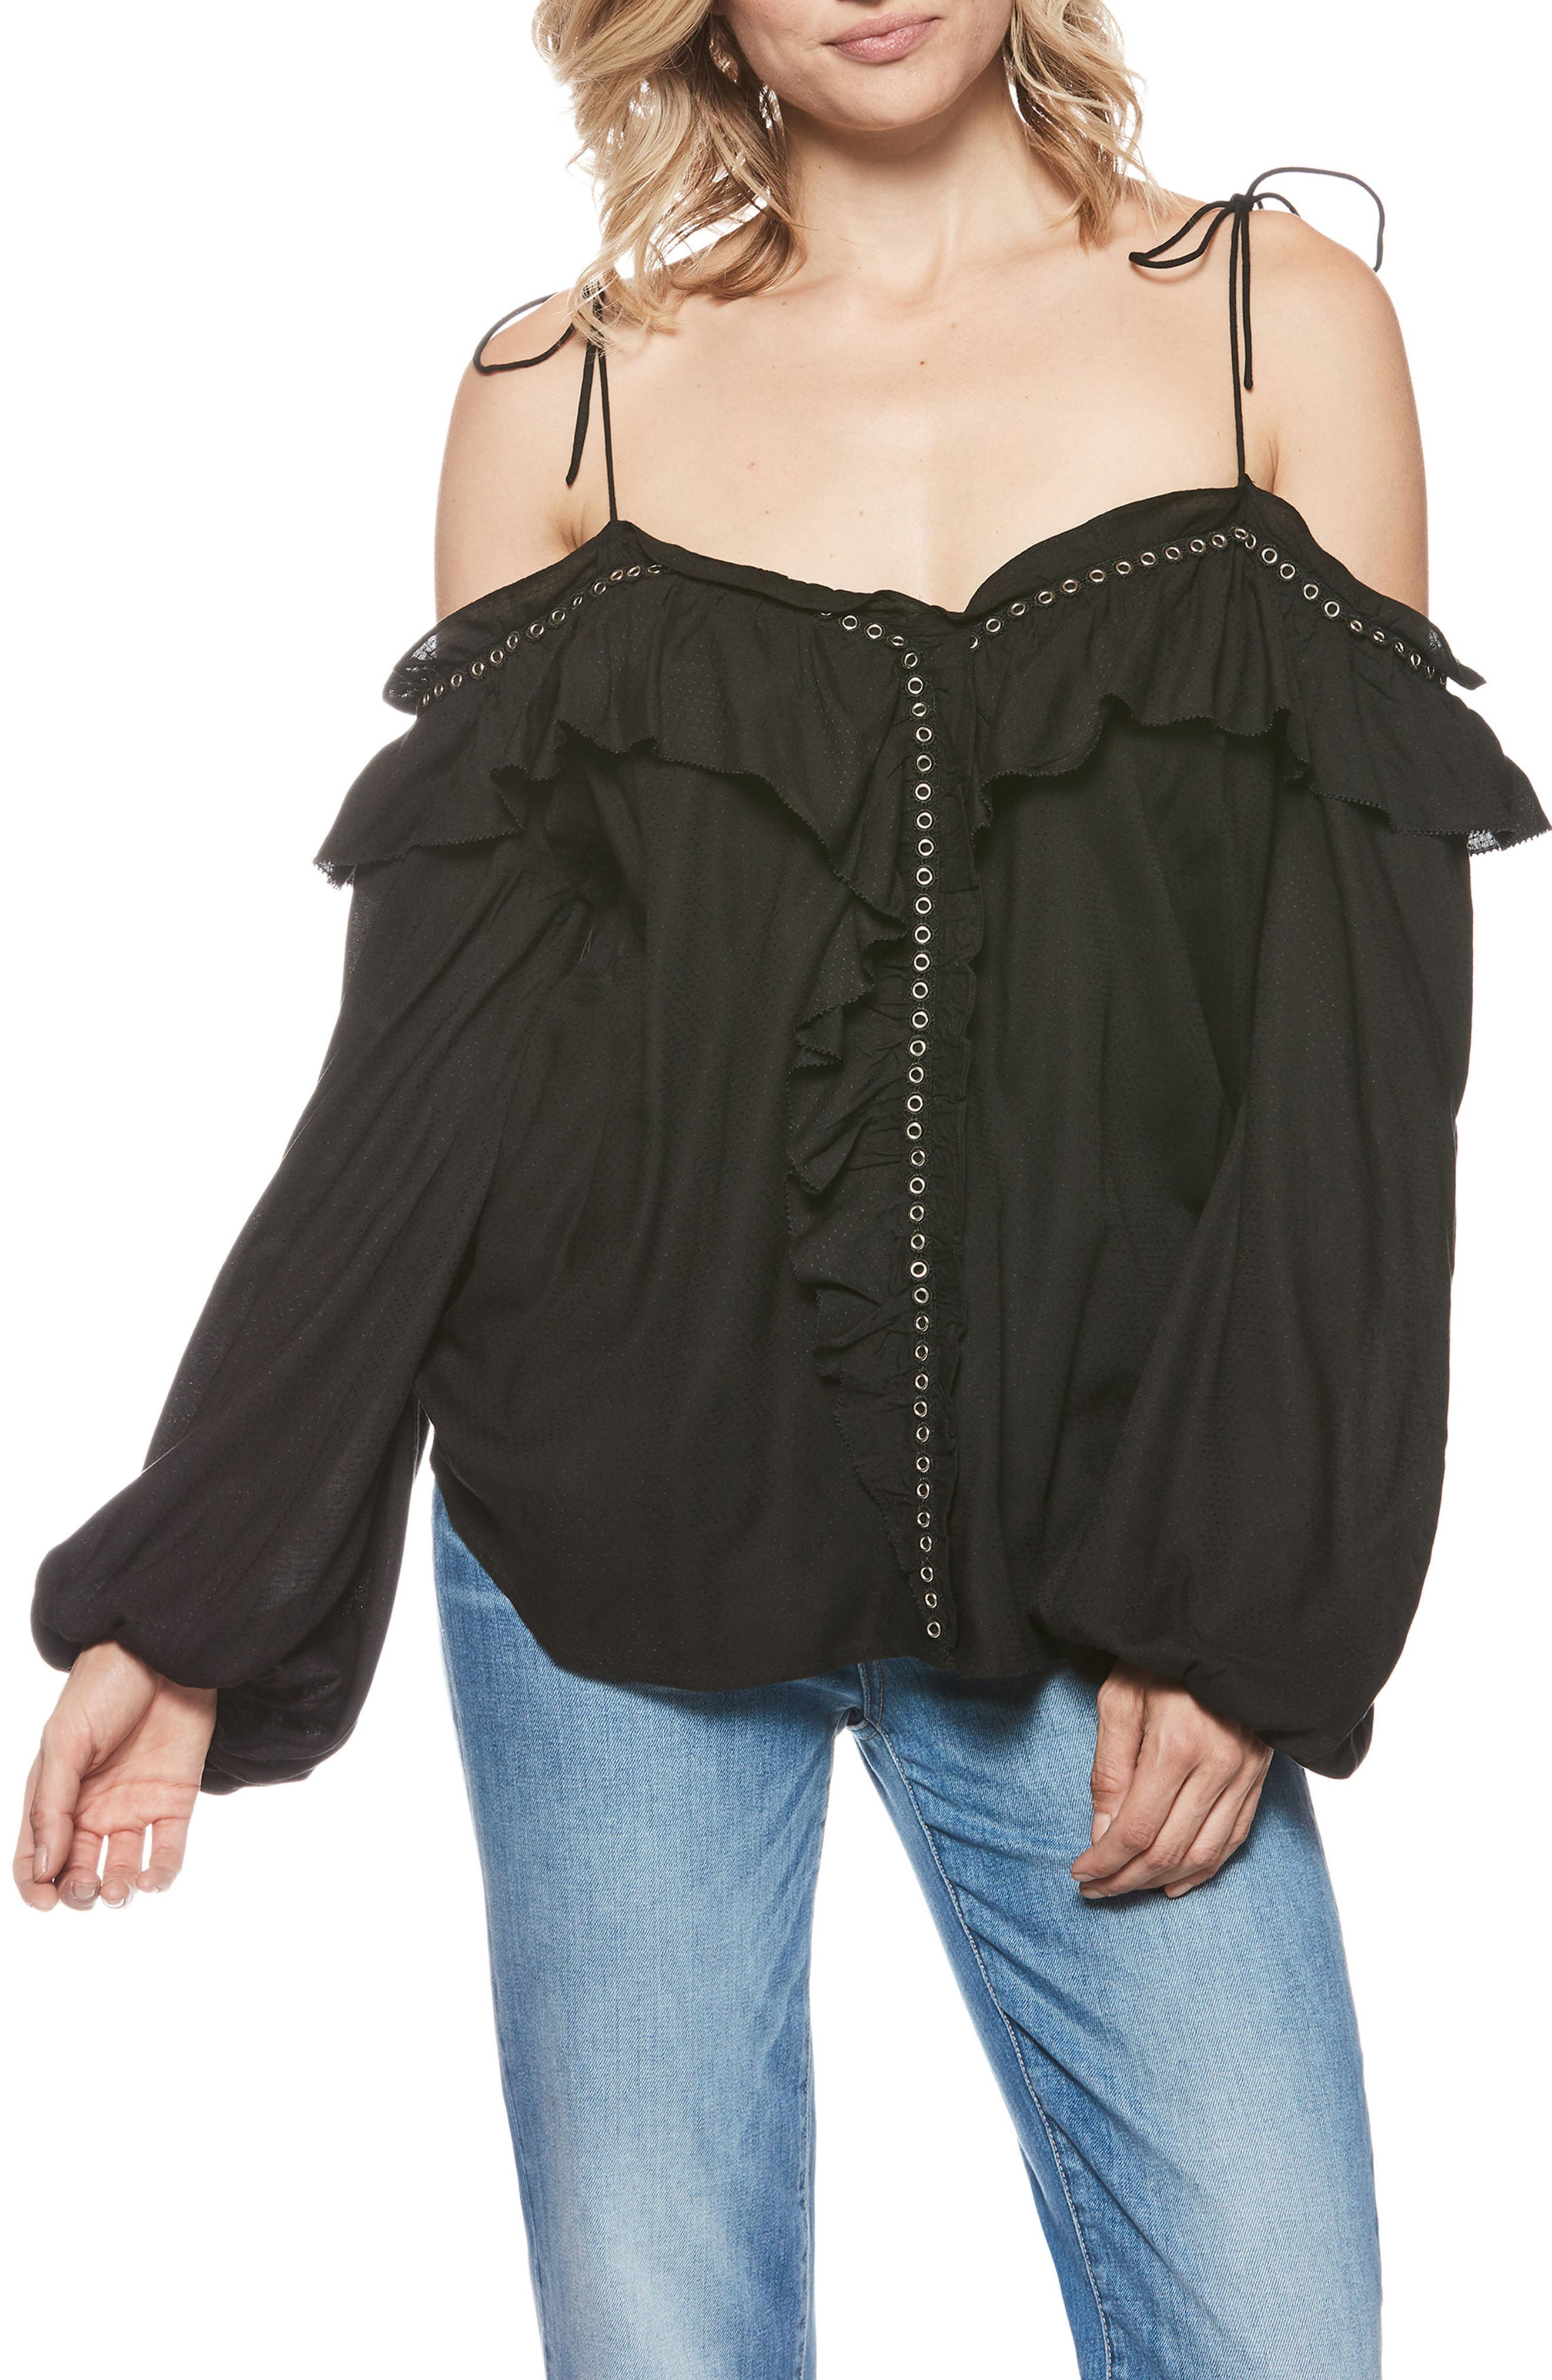 Journee Tie Shoulder Blouse,                         Main,                         color, BLACK